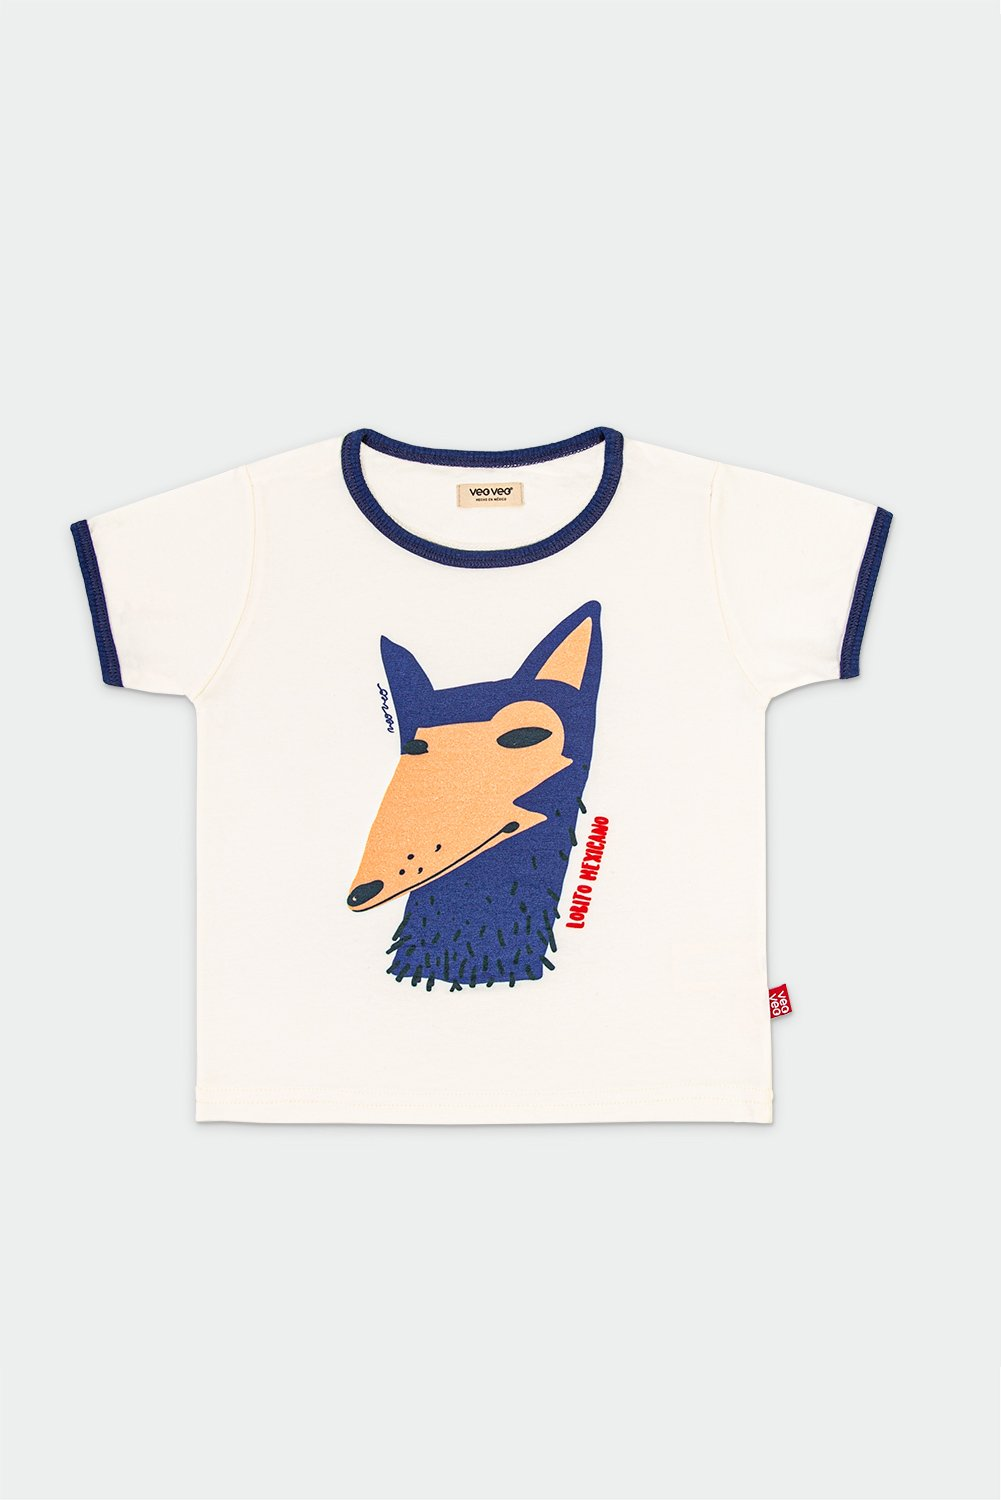 veoveo.store _ wolf_ tee_kids_girls_producto_front